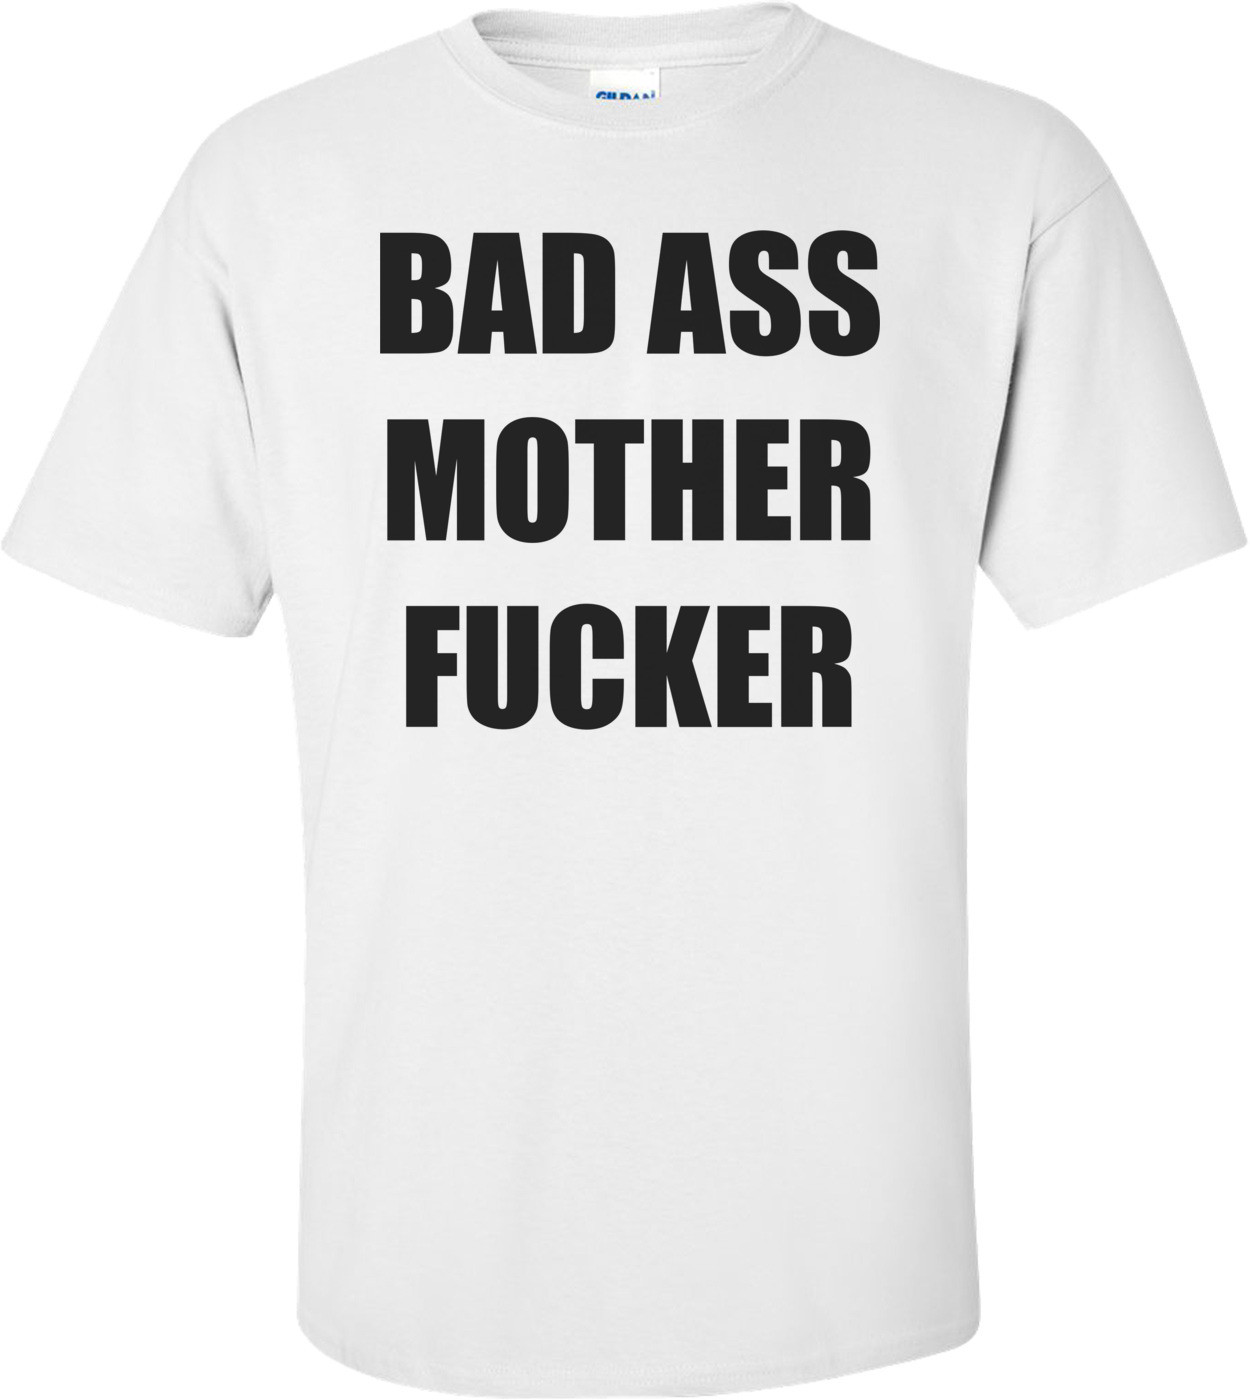 BAD ASS MOTHER FUCKER Shirt